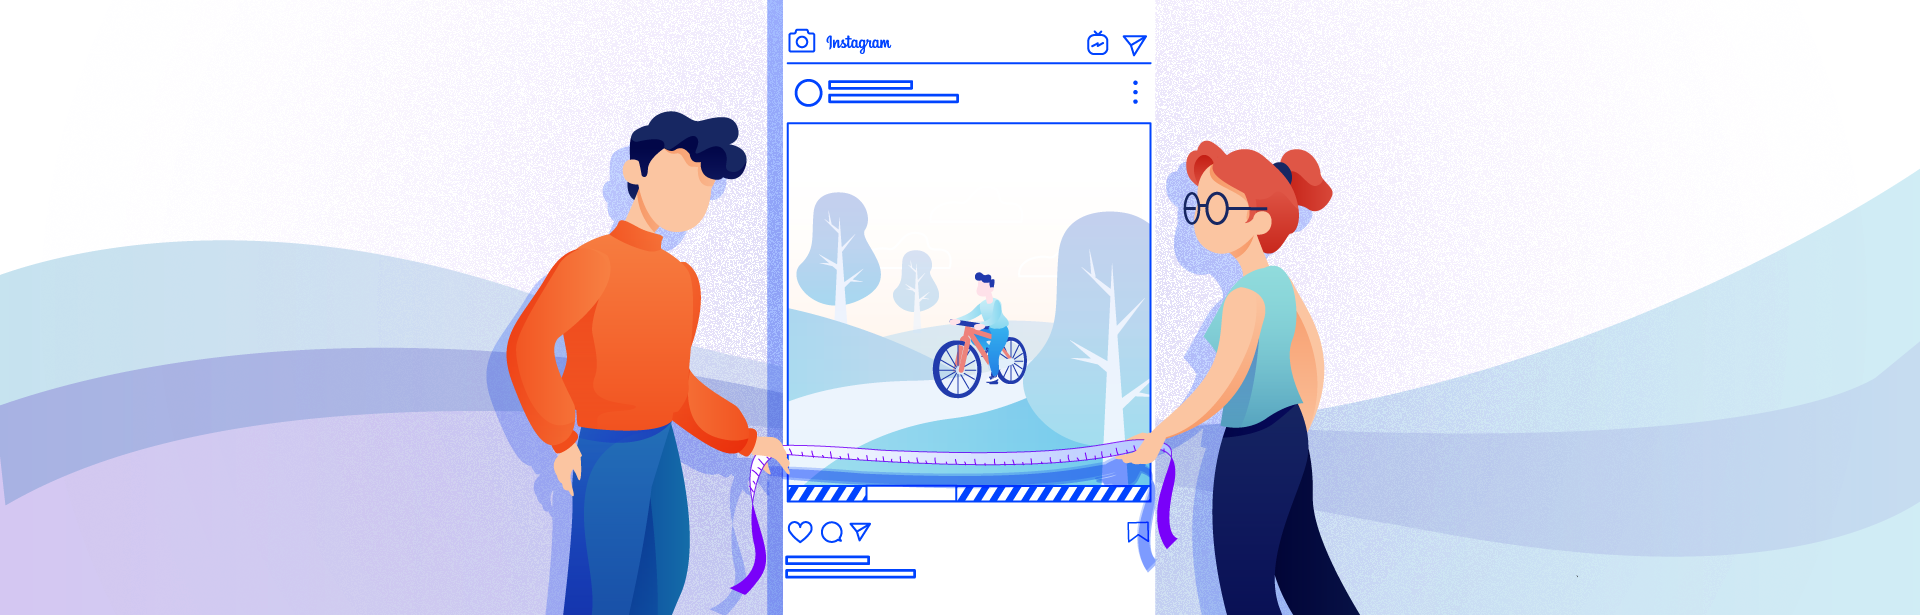 Instagram Video Lengths- How to Get the Most Out of it